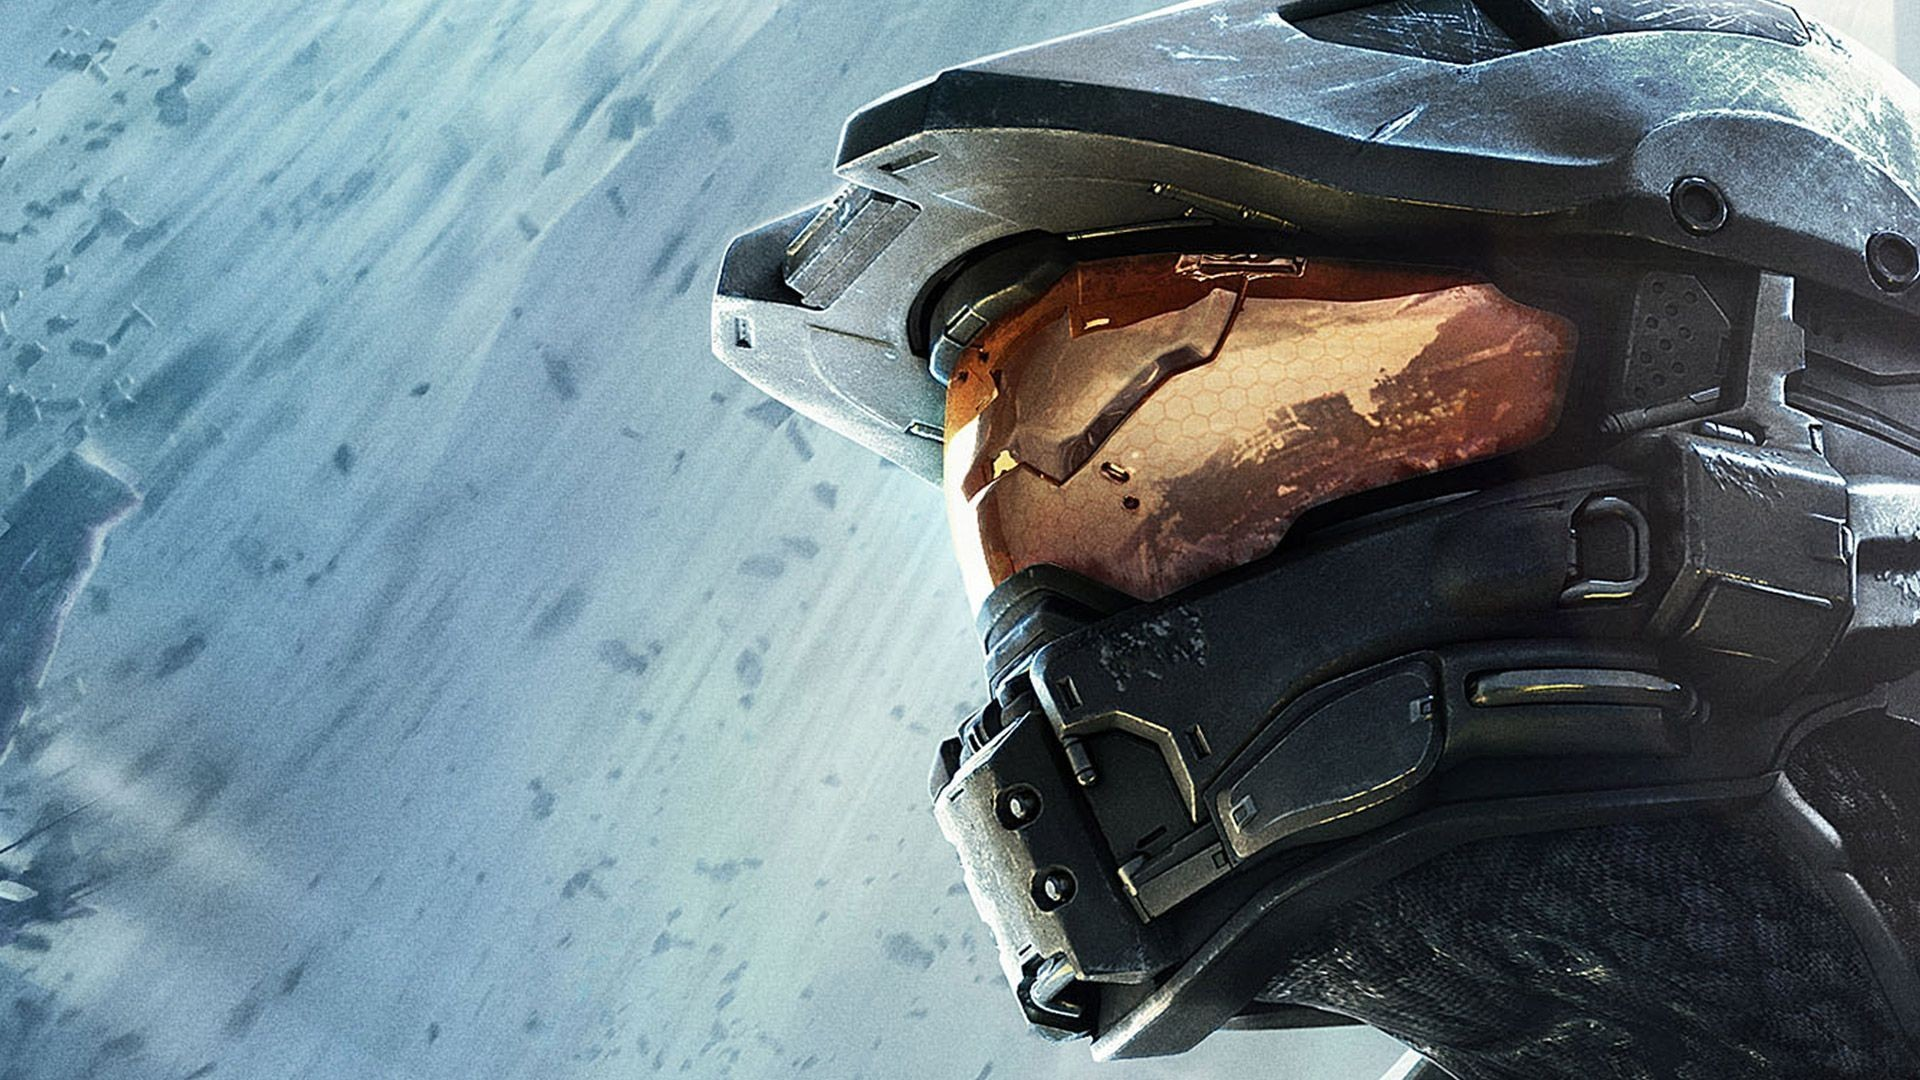 1920x1080 Halo 4 Master Chief Full HD Wallpapers 14018 - Amazing Wallpaperz